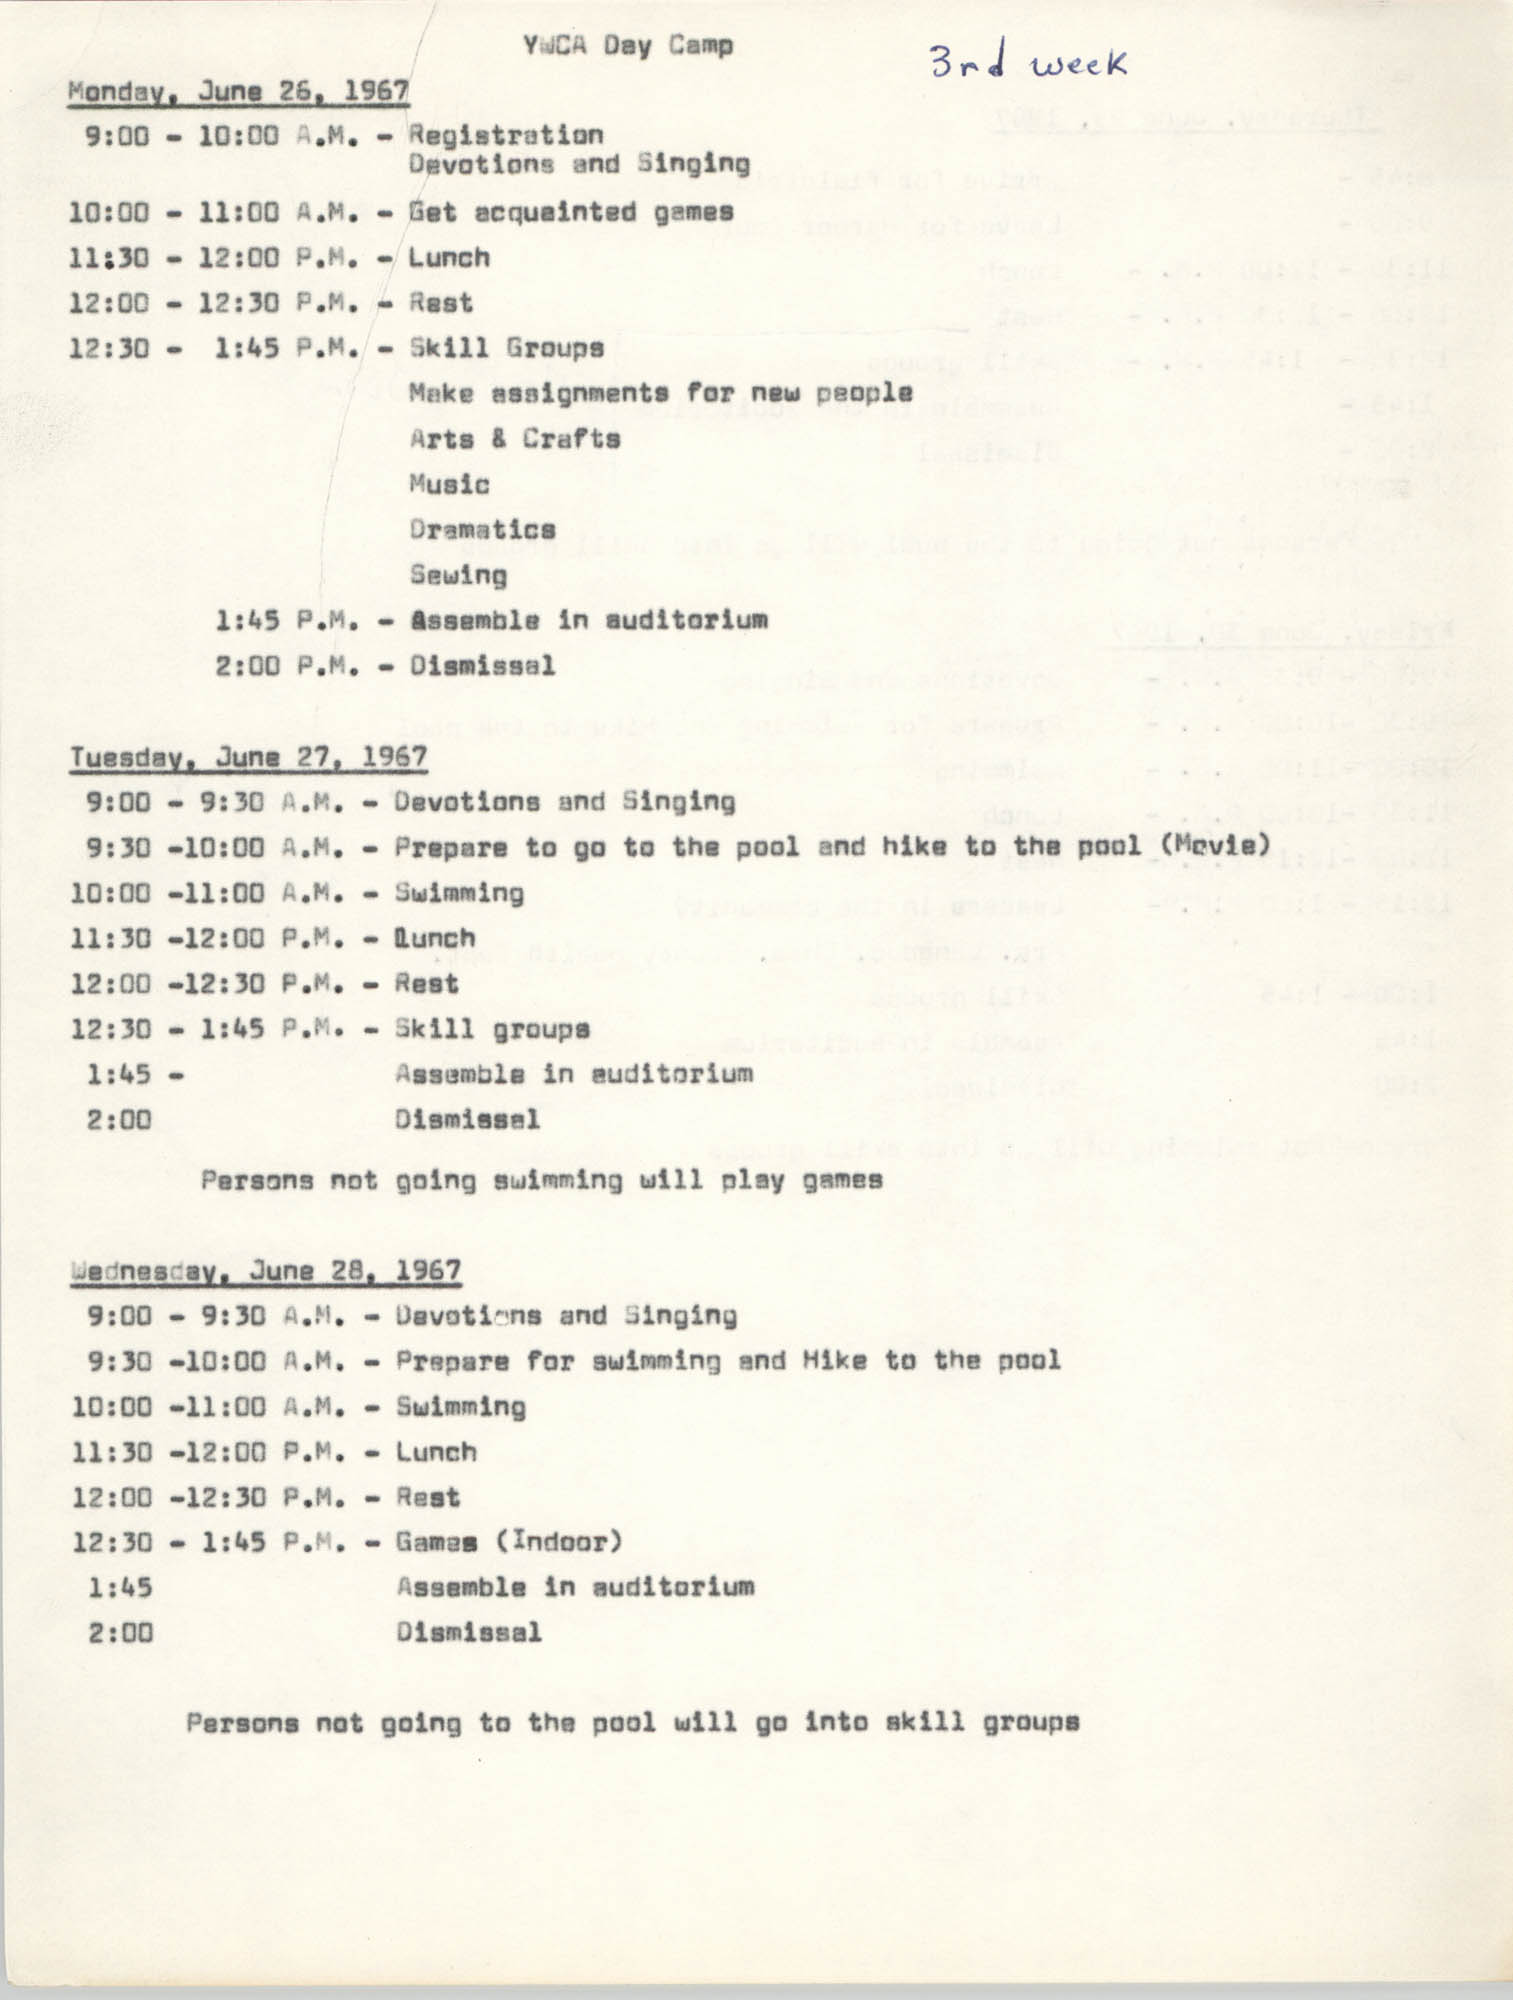 Coming Street Y.W.C.A. Day Camp, June 26-30 1967, Page 1